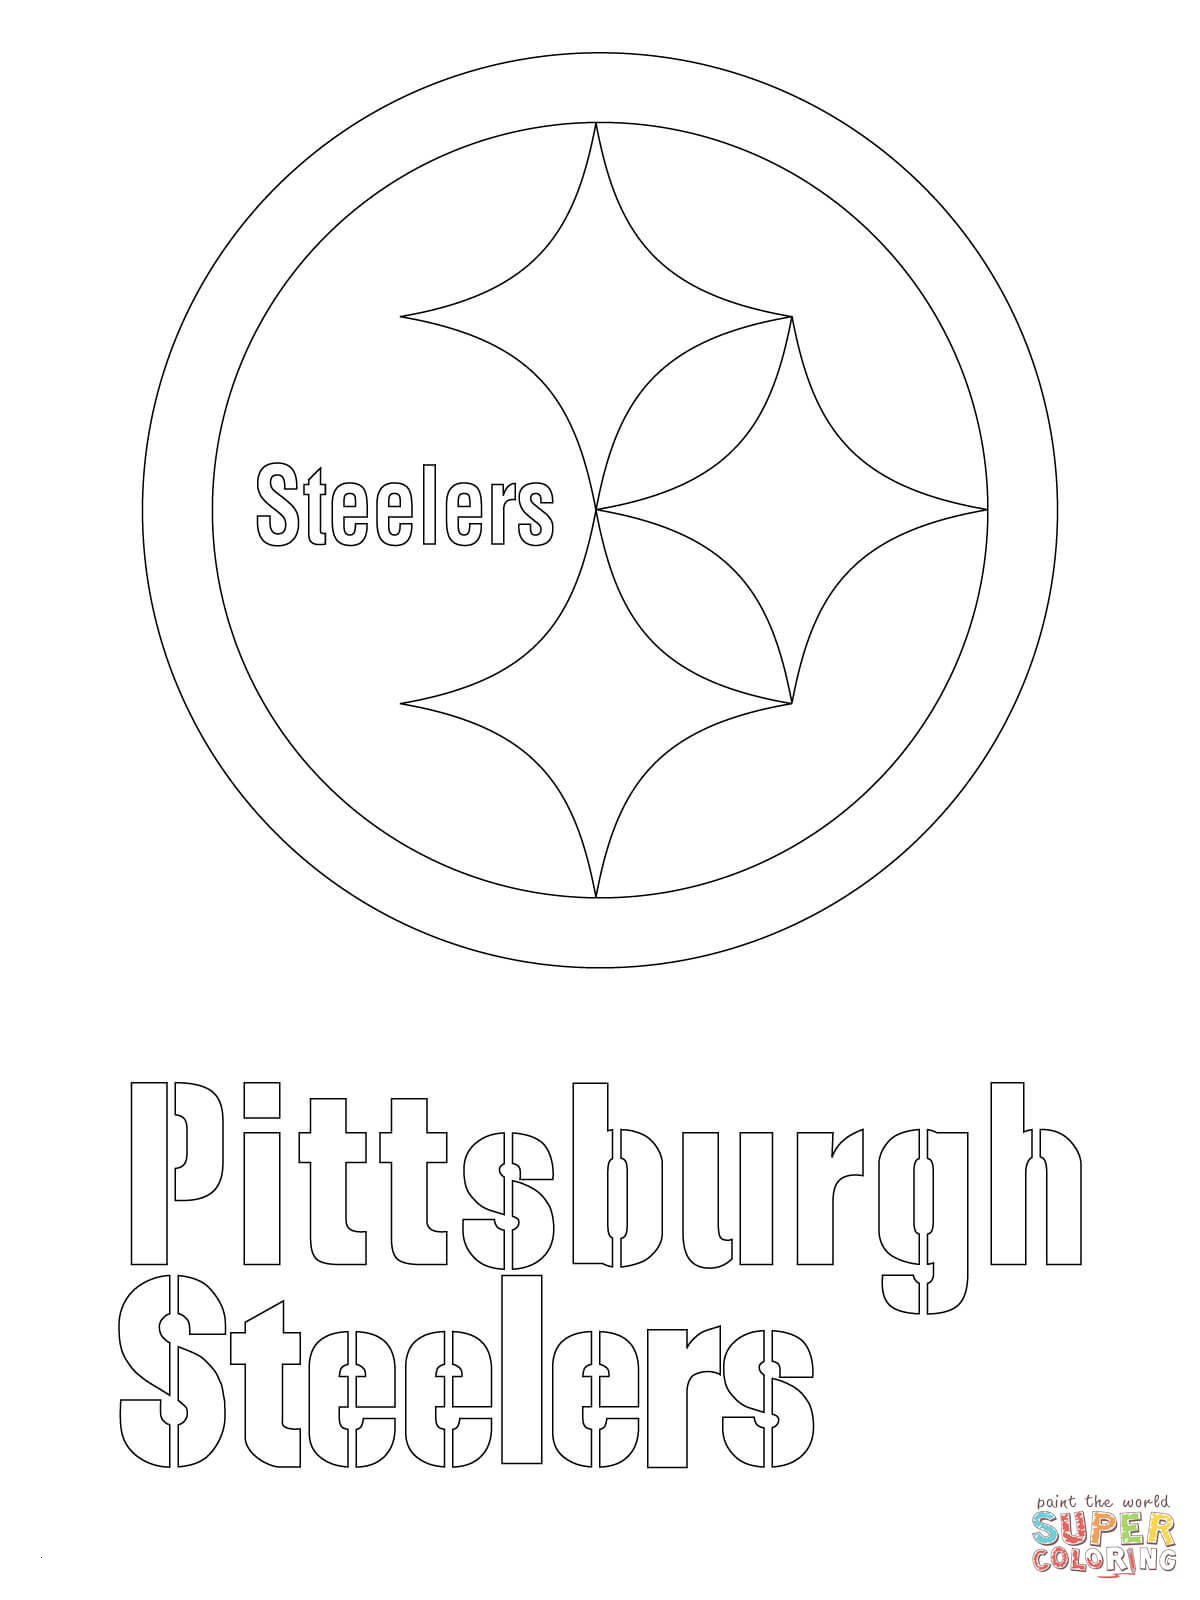 Pittsburgh Steeler Coloring Pages  Gallery 17n - To print for your project